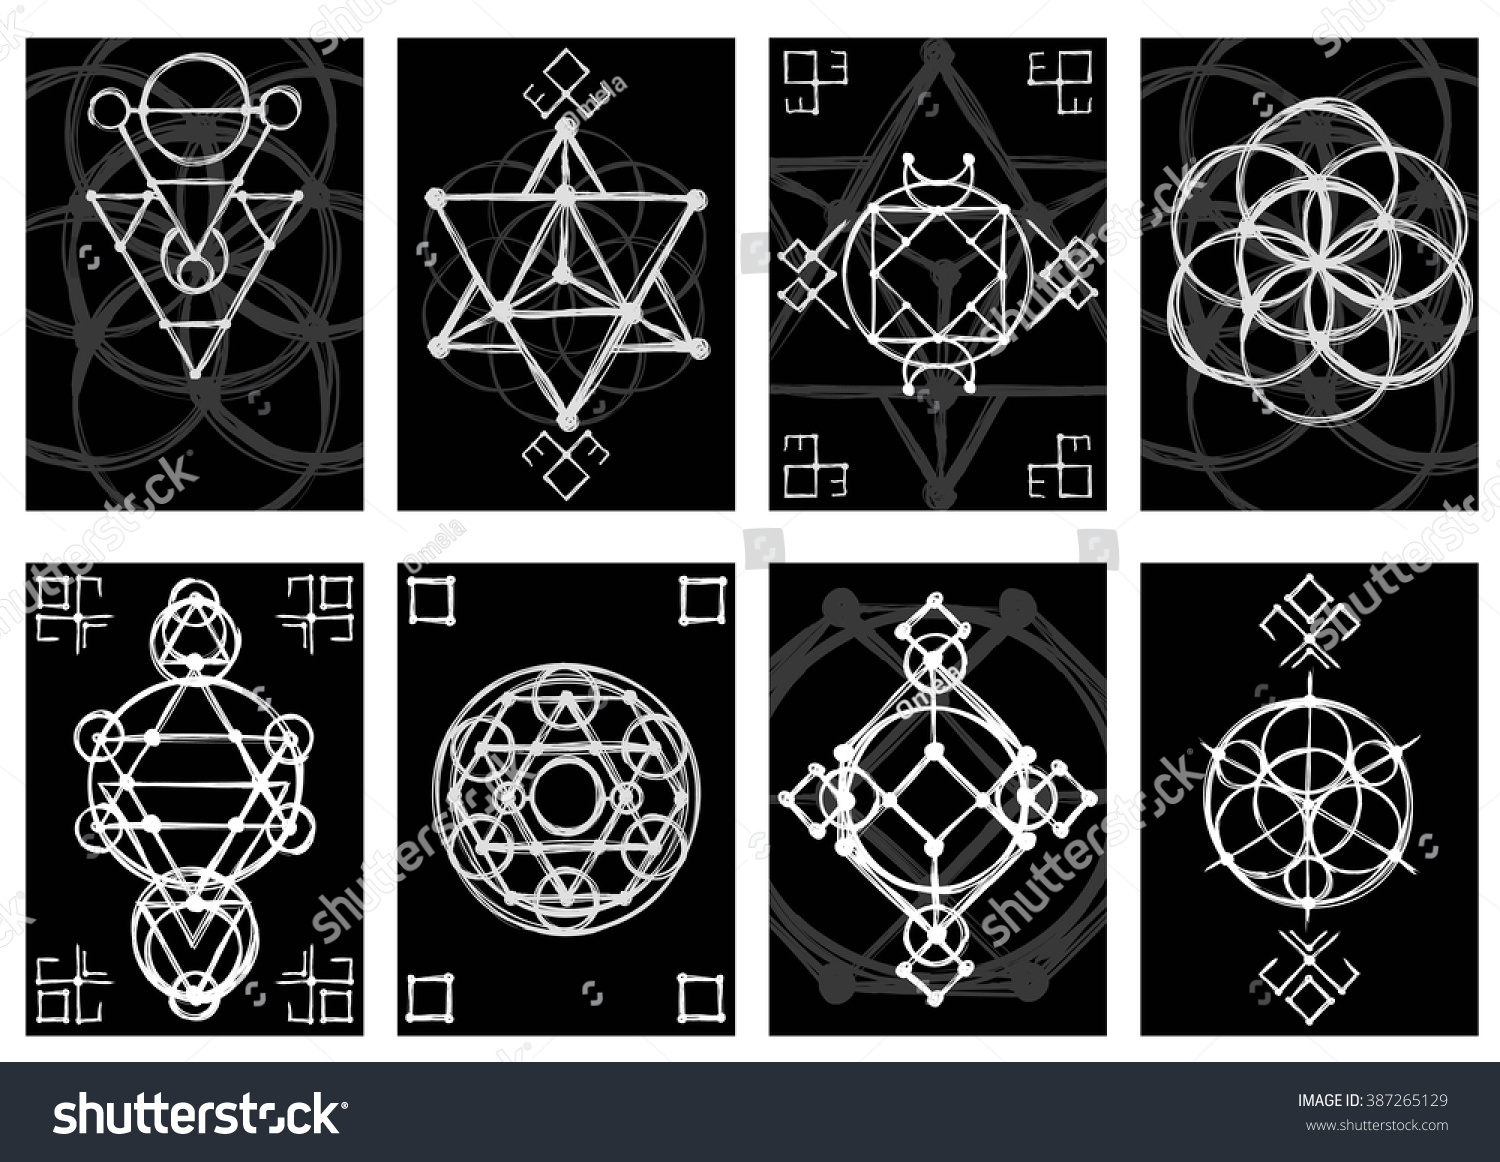 Stock Illustration Volleyball Tribal Abstract Vector: Set Of Cards With Abstract Hand Sketched Sacred Geometry